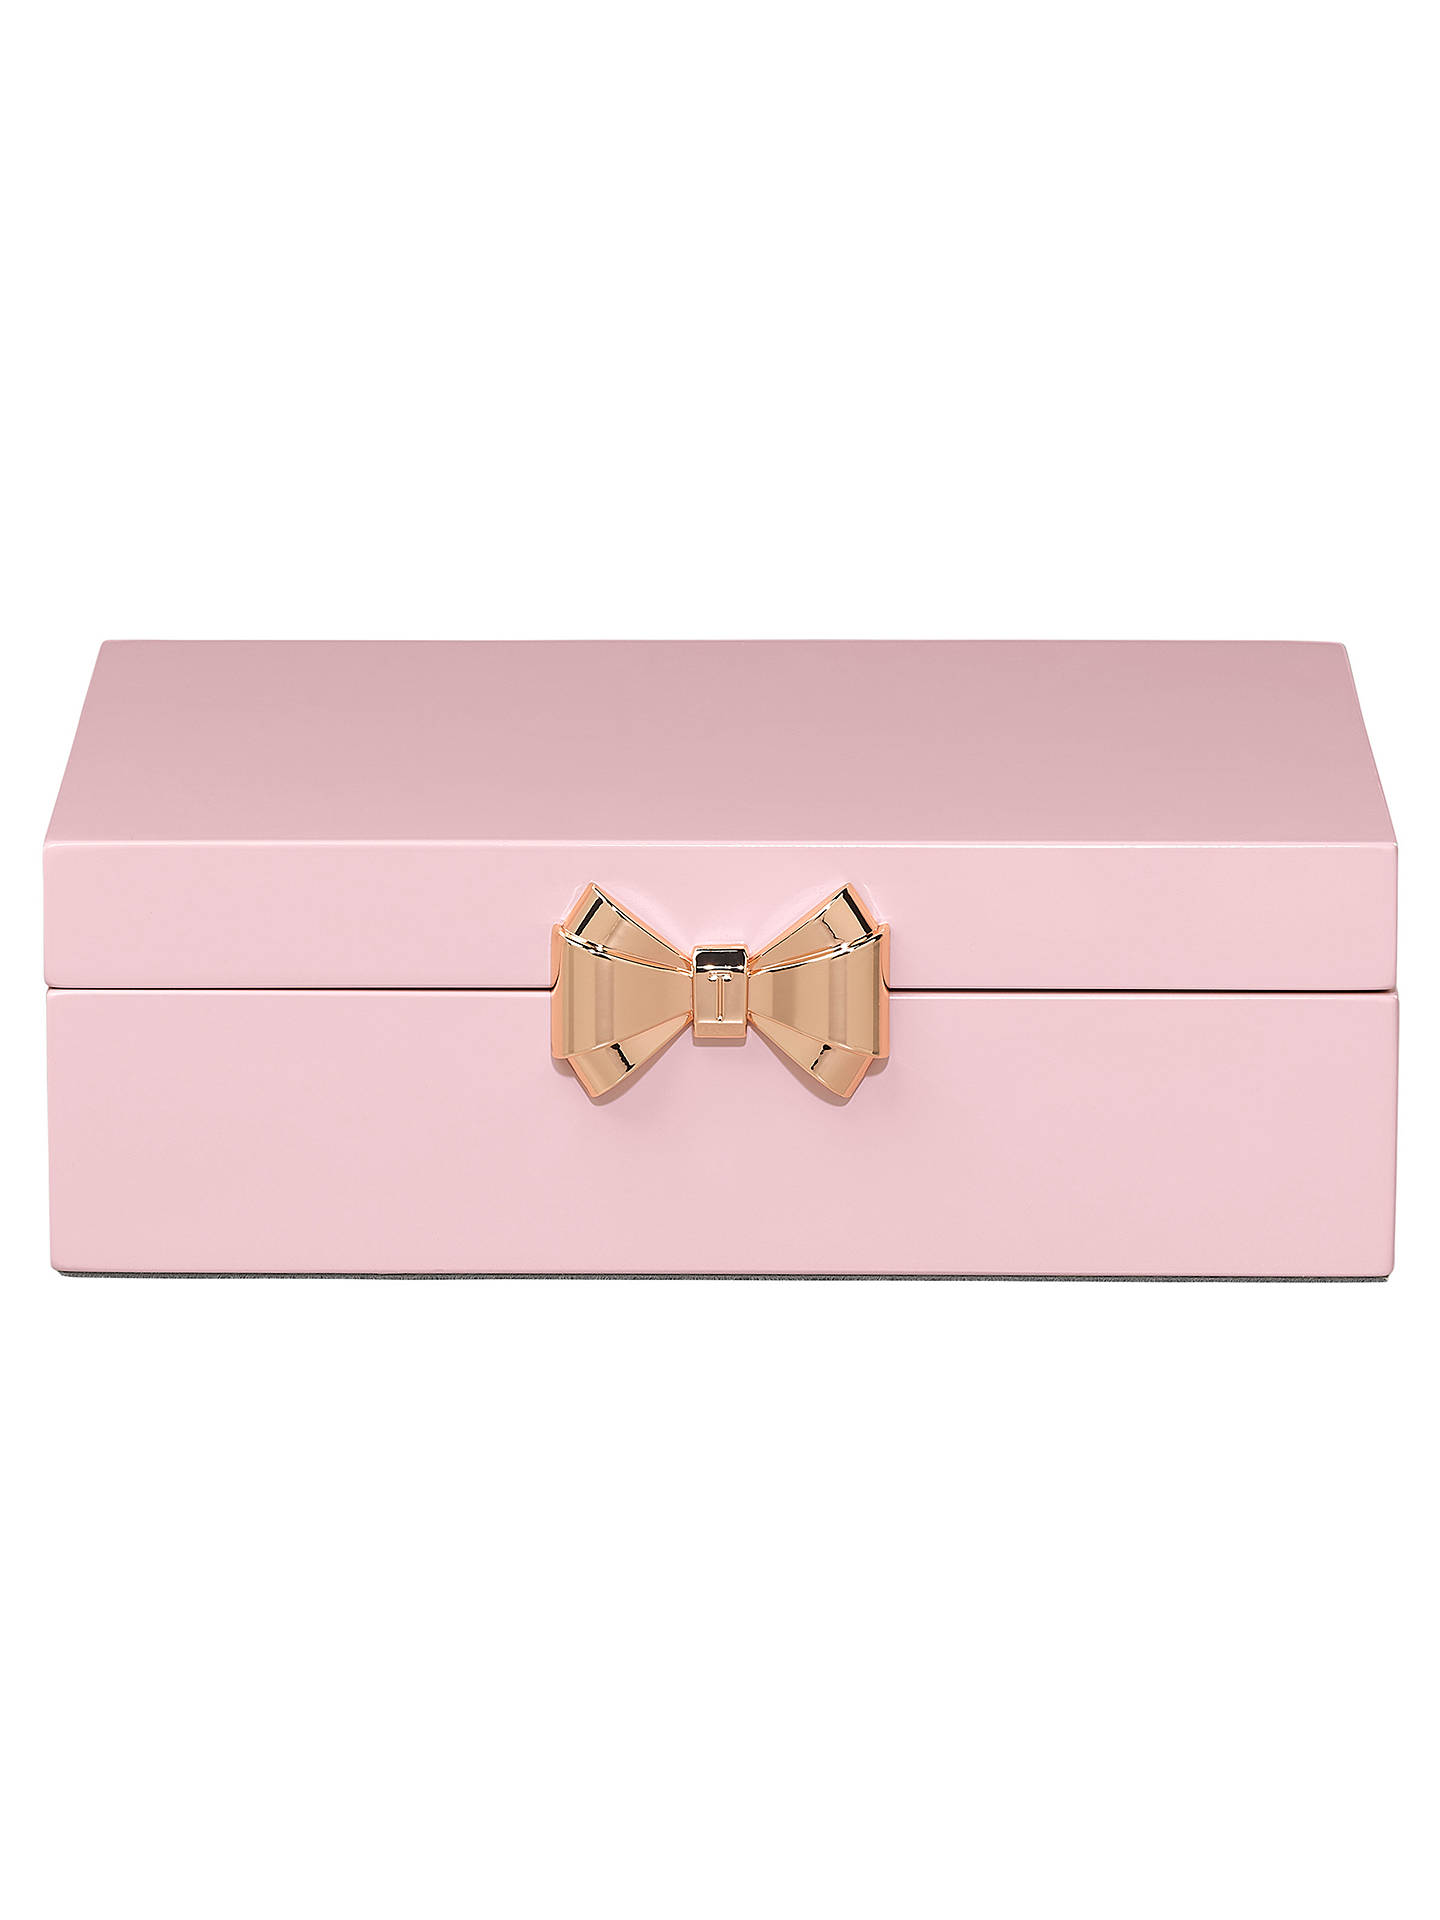 Ted Baker Medium Lacquered Jewellery Box At John Lewis